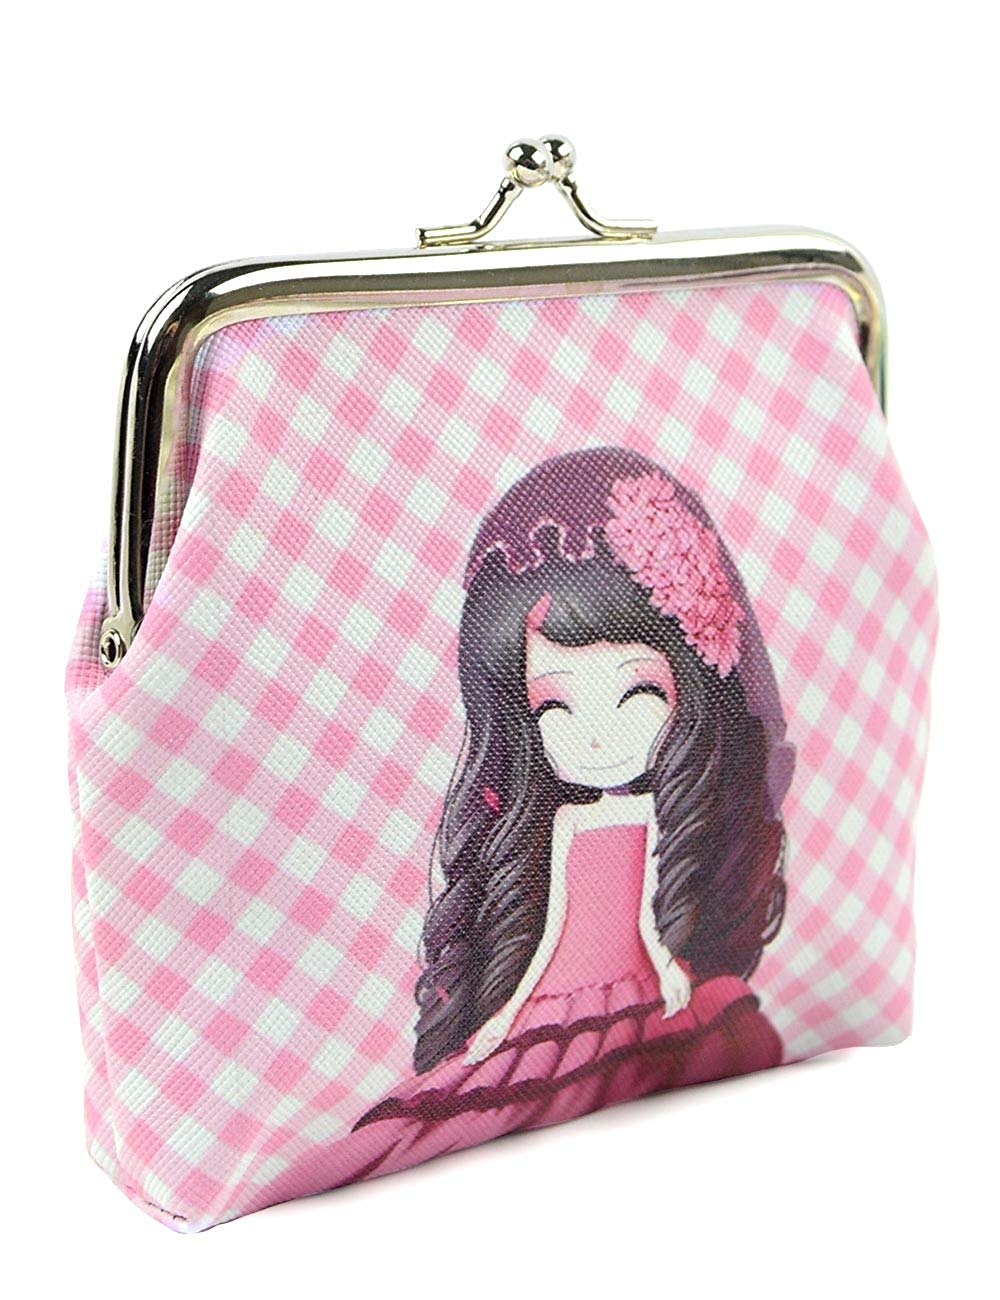 077dbb0ce2 POPUCT Lovely Girl Pattern Coin Purse Kiss Lock for Girls and Teenagers